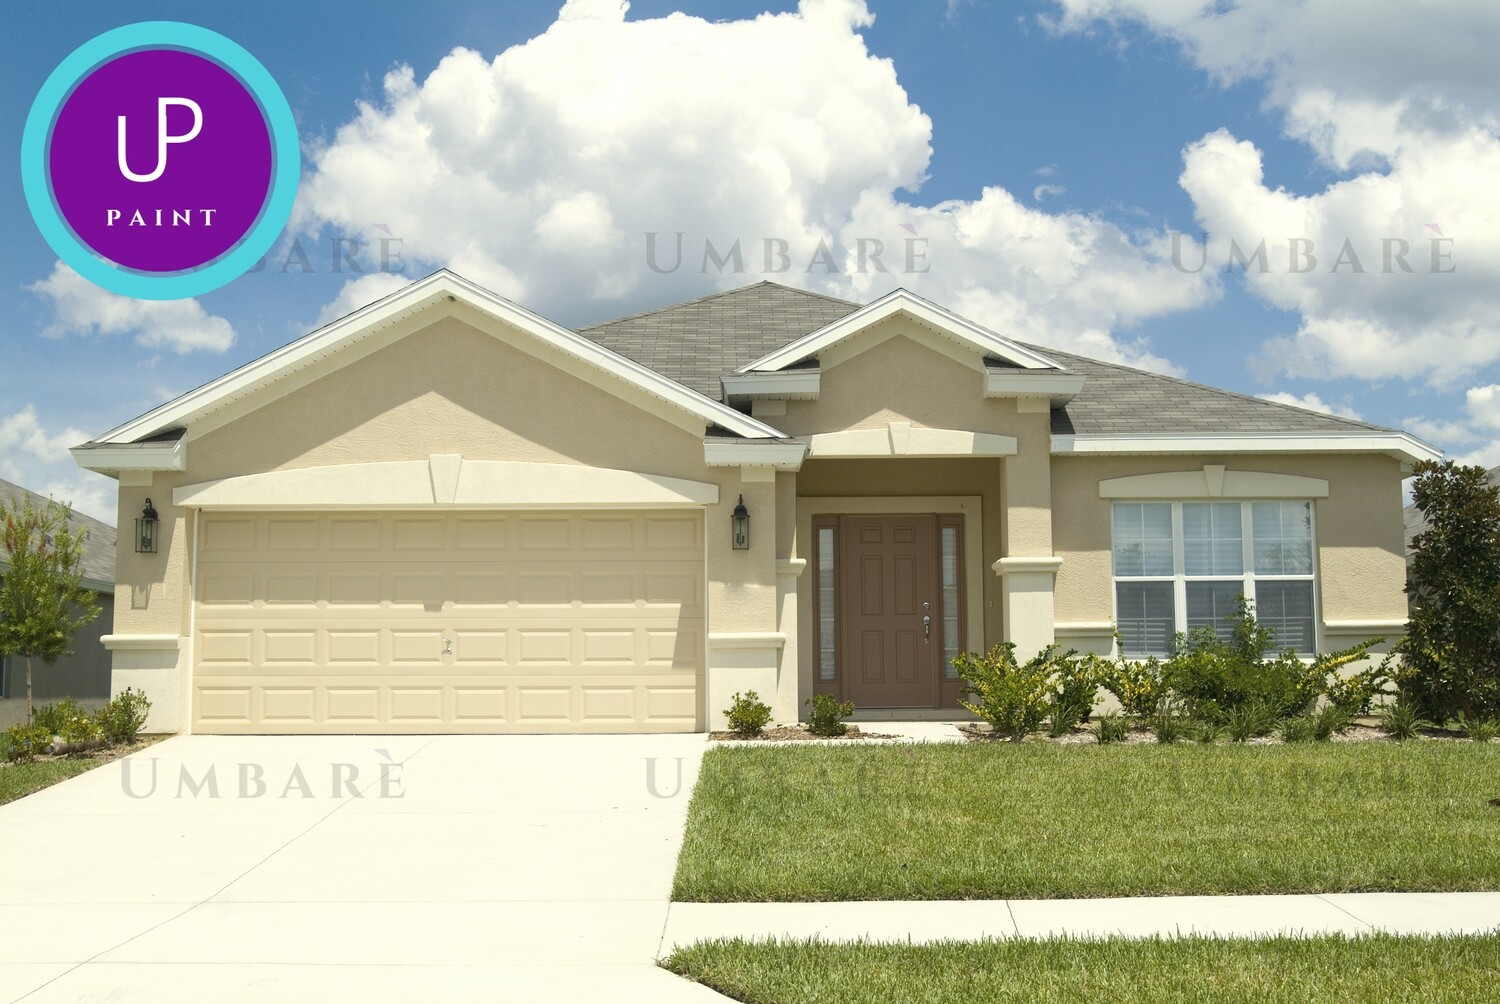 Umbare 1 Story Home Exterior Painting House Refinish Basic